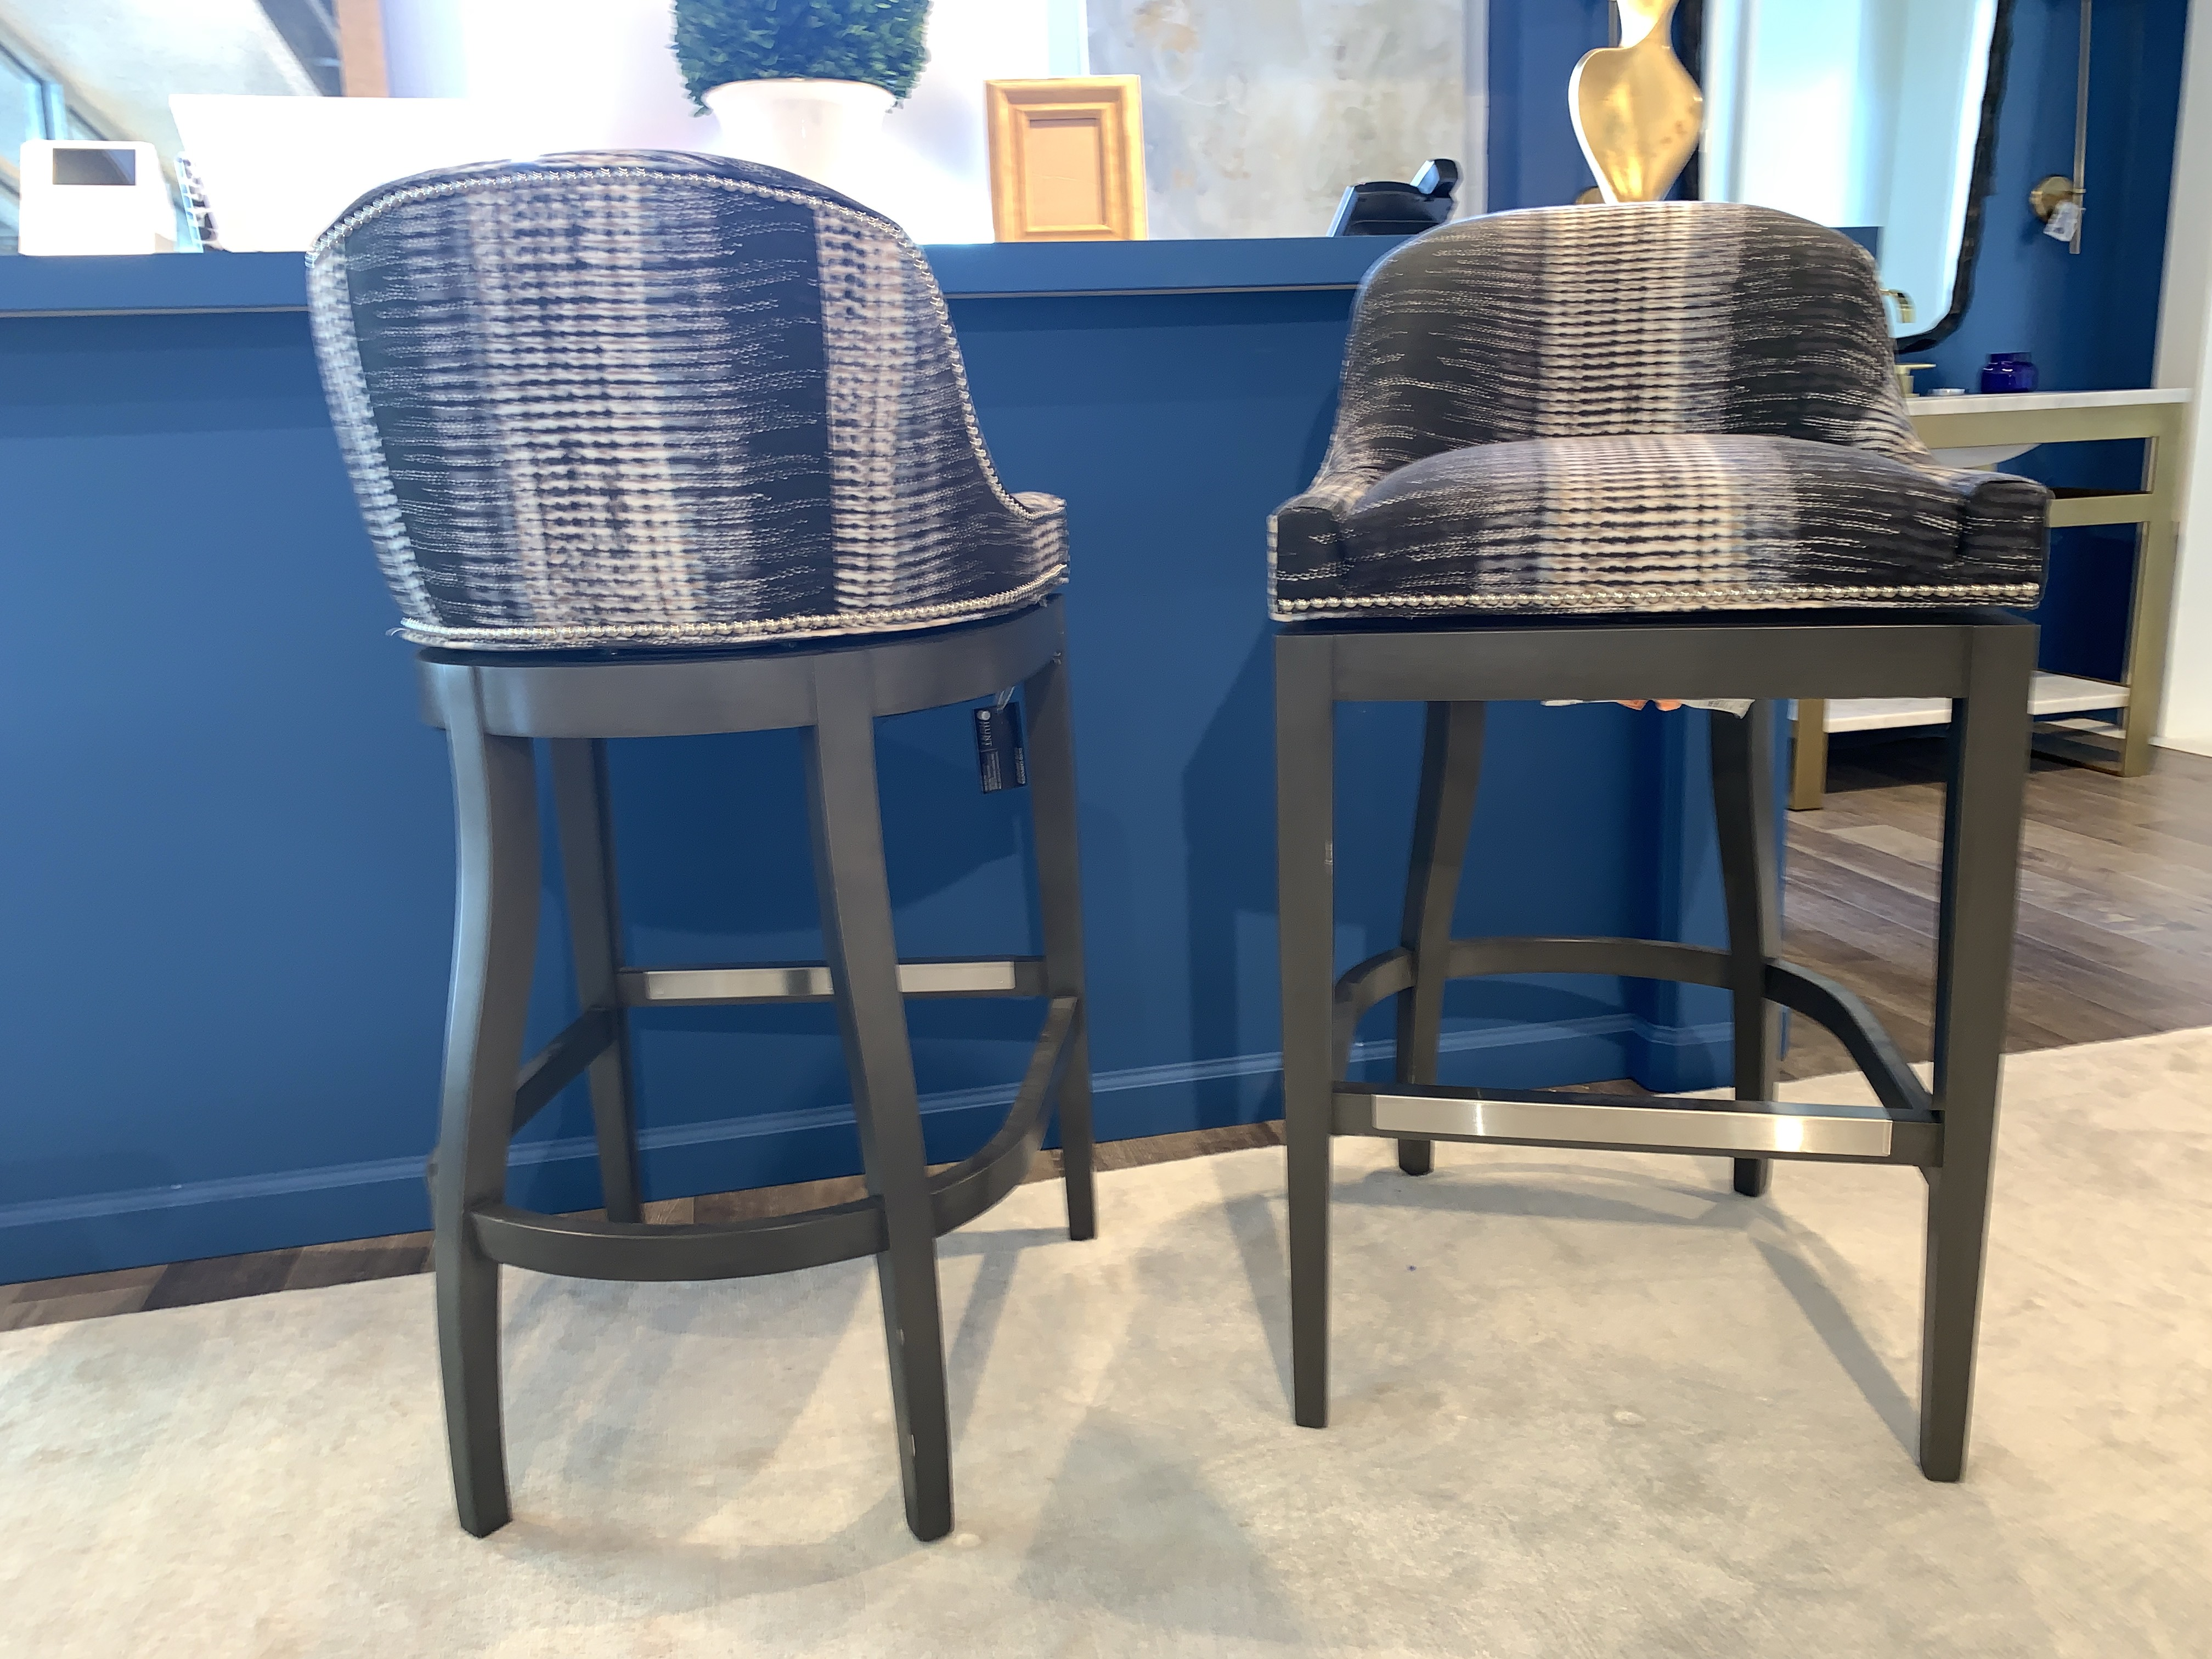 Pleasing Barstools By Vanguard Hunt Alphanode Cool Chair Designs And Ideas Alphanodeonline